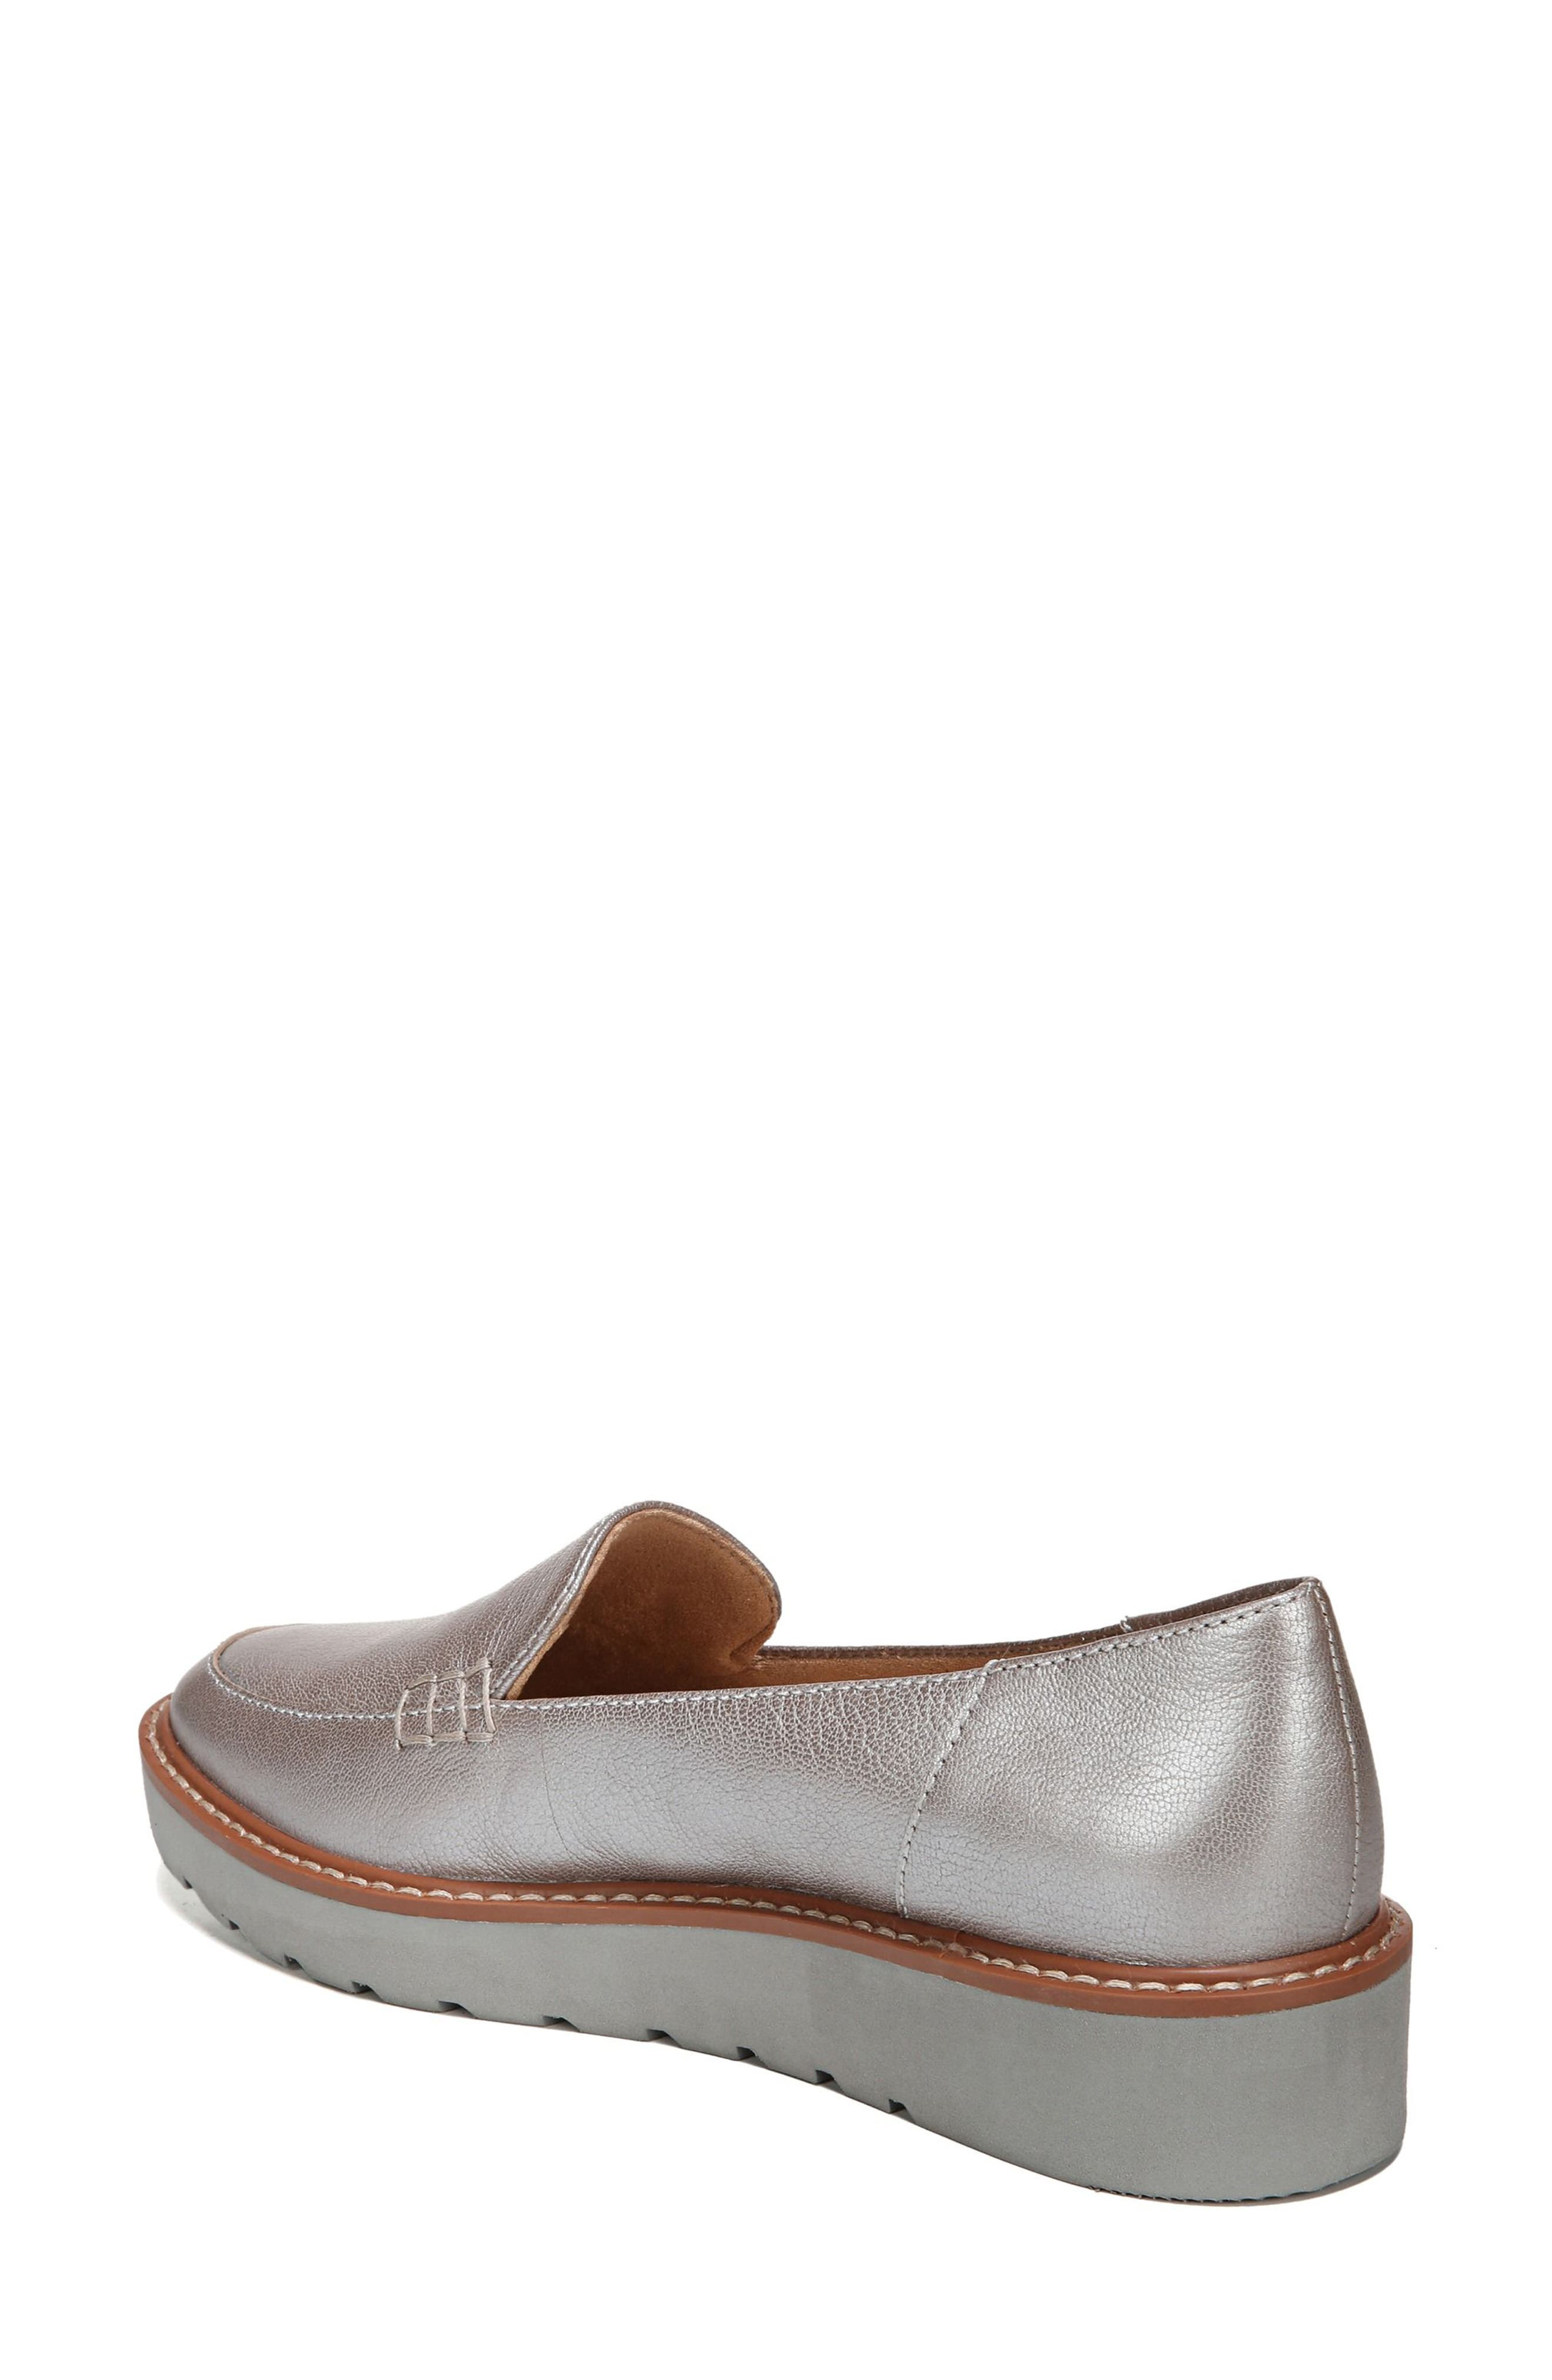 Andie Loafer,                             Alternate thumbnail 2, color,                             Silver Leather